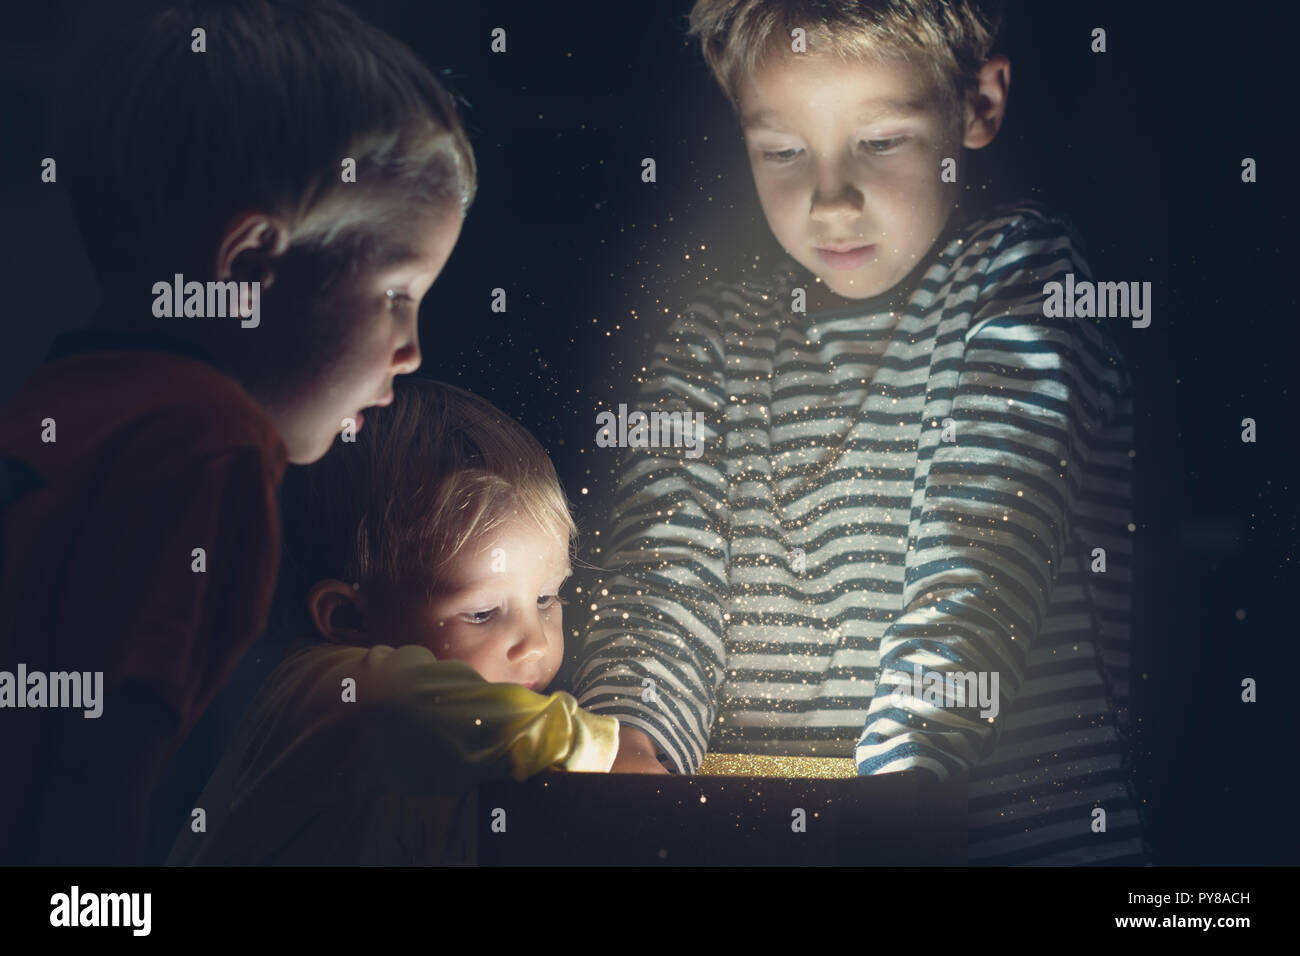 Retro image of holiday magic with three toddler kids reaching in golden gift box with sparkling light and glitters shinning from it. - Stock Image